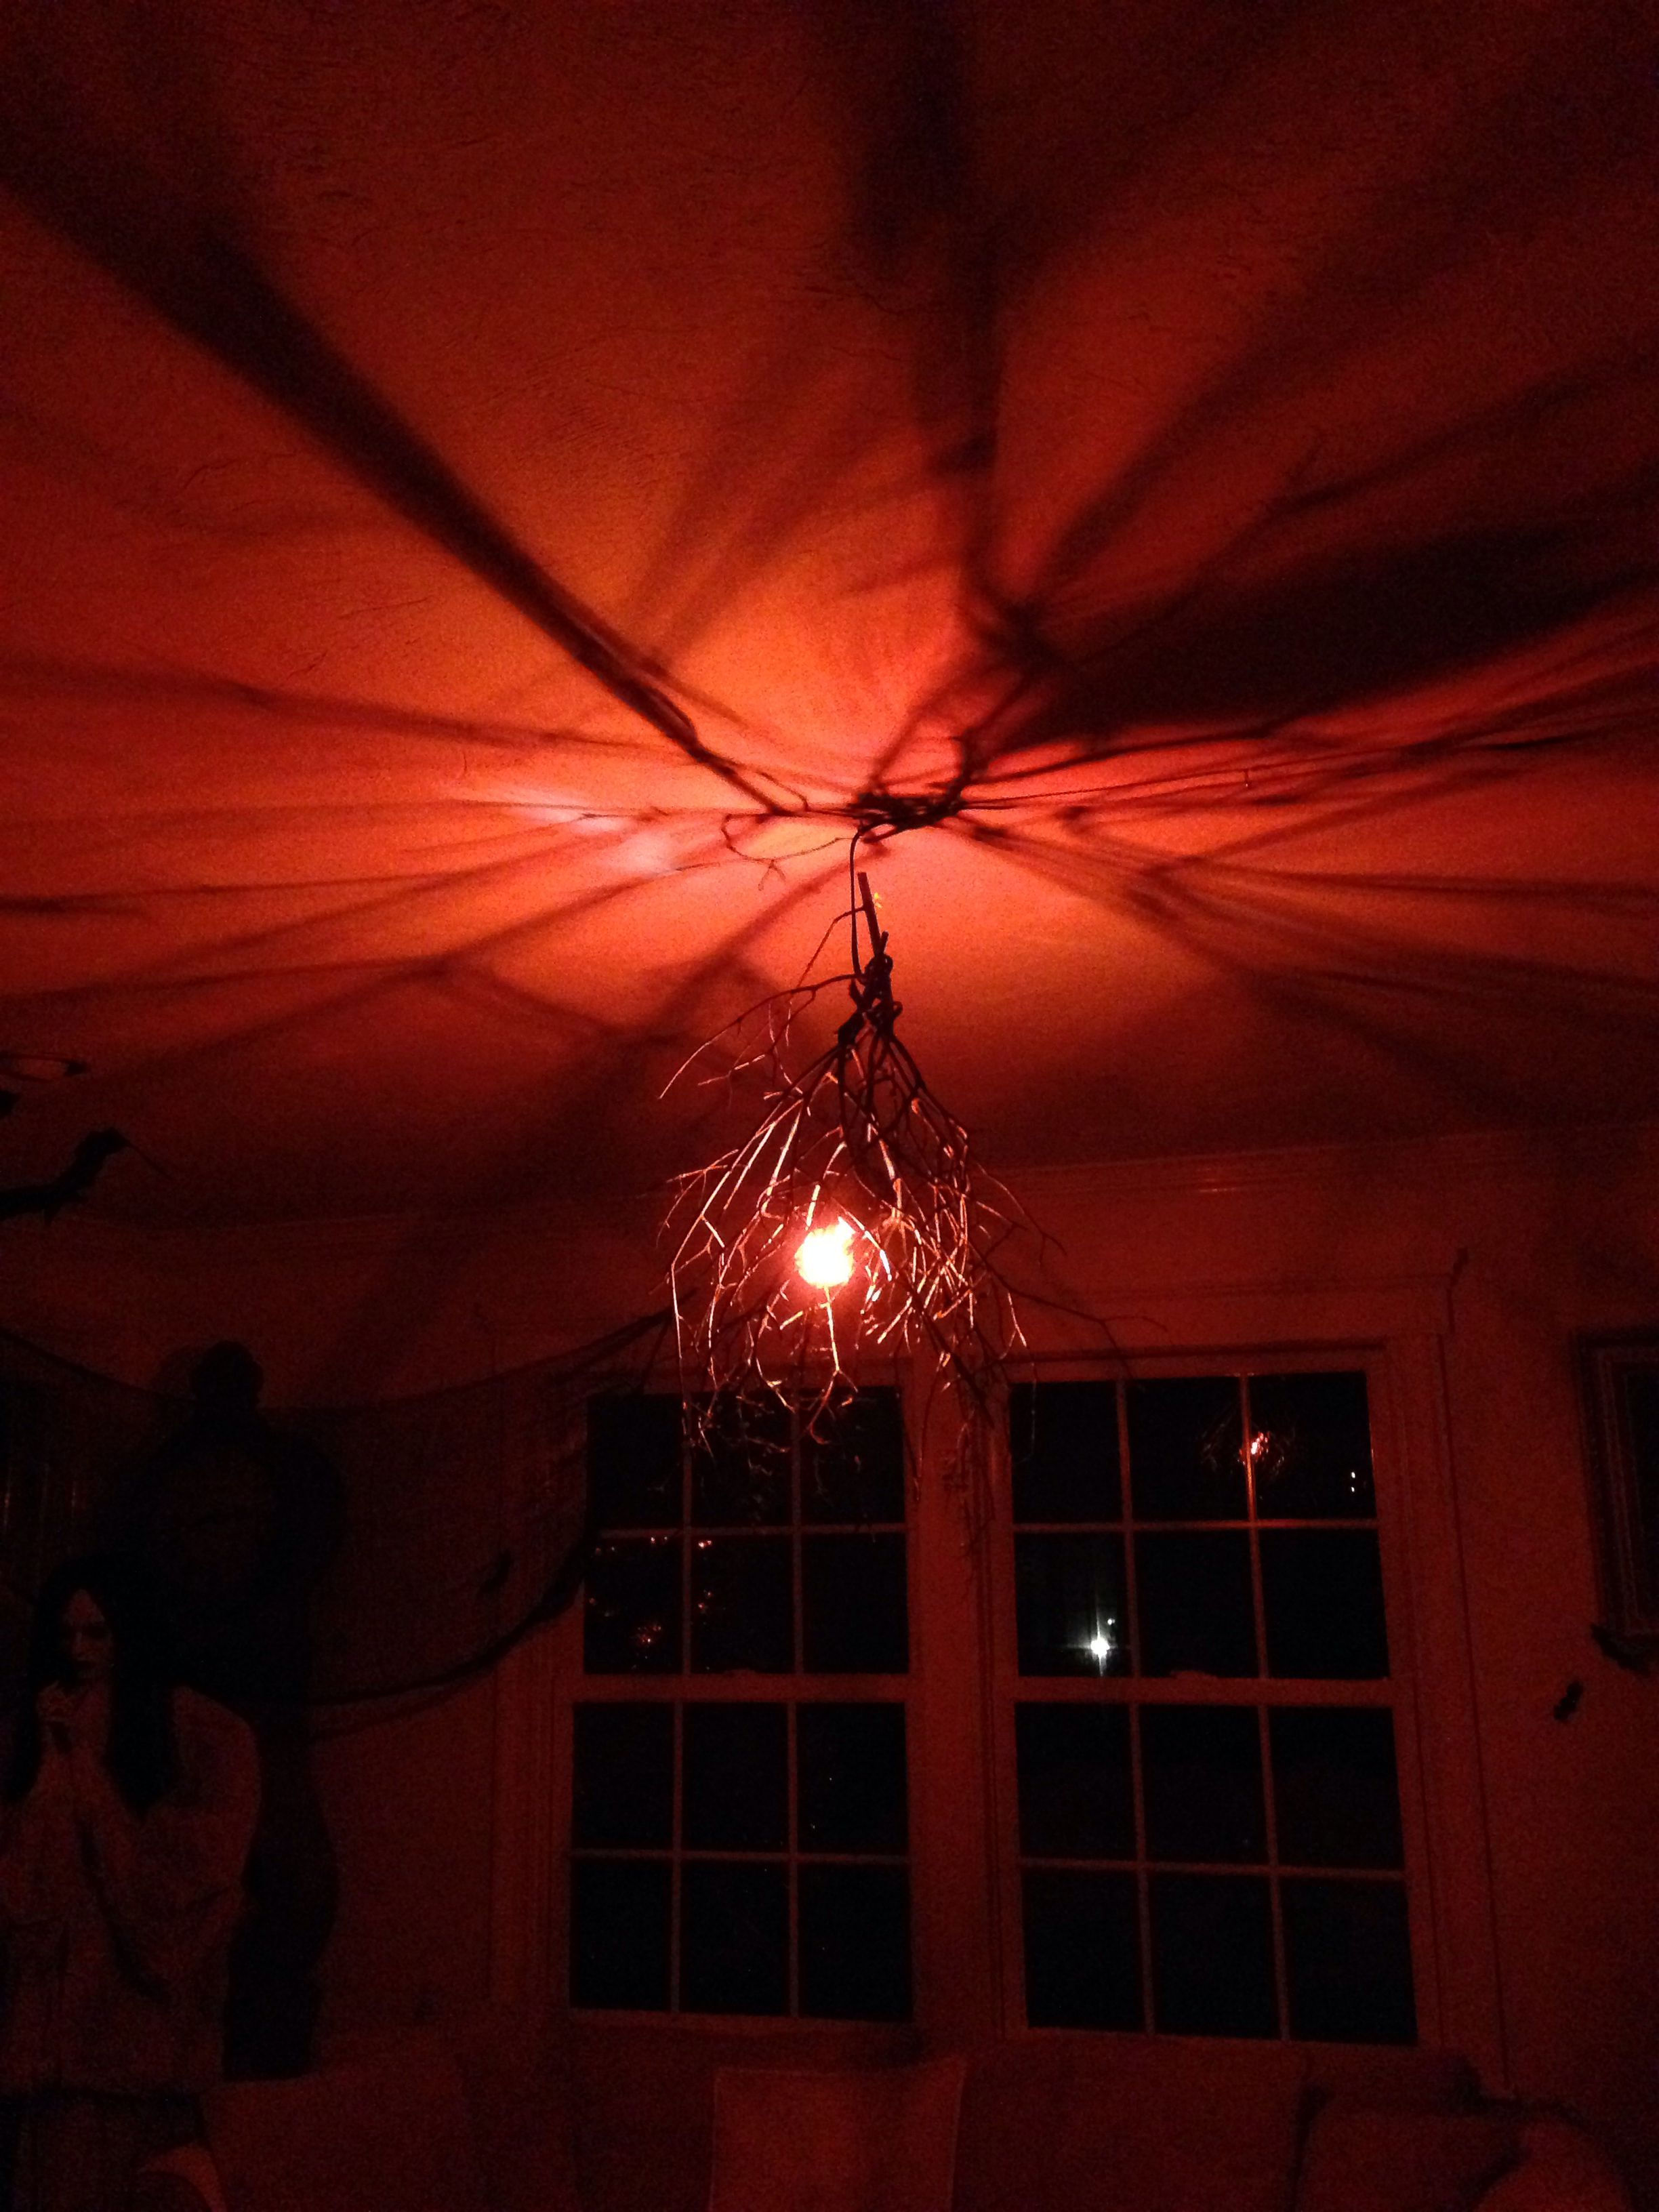 orange light bulb with some black spray painted branches easy and super spooky halloween